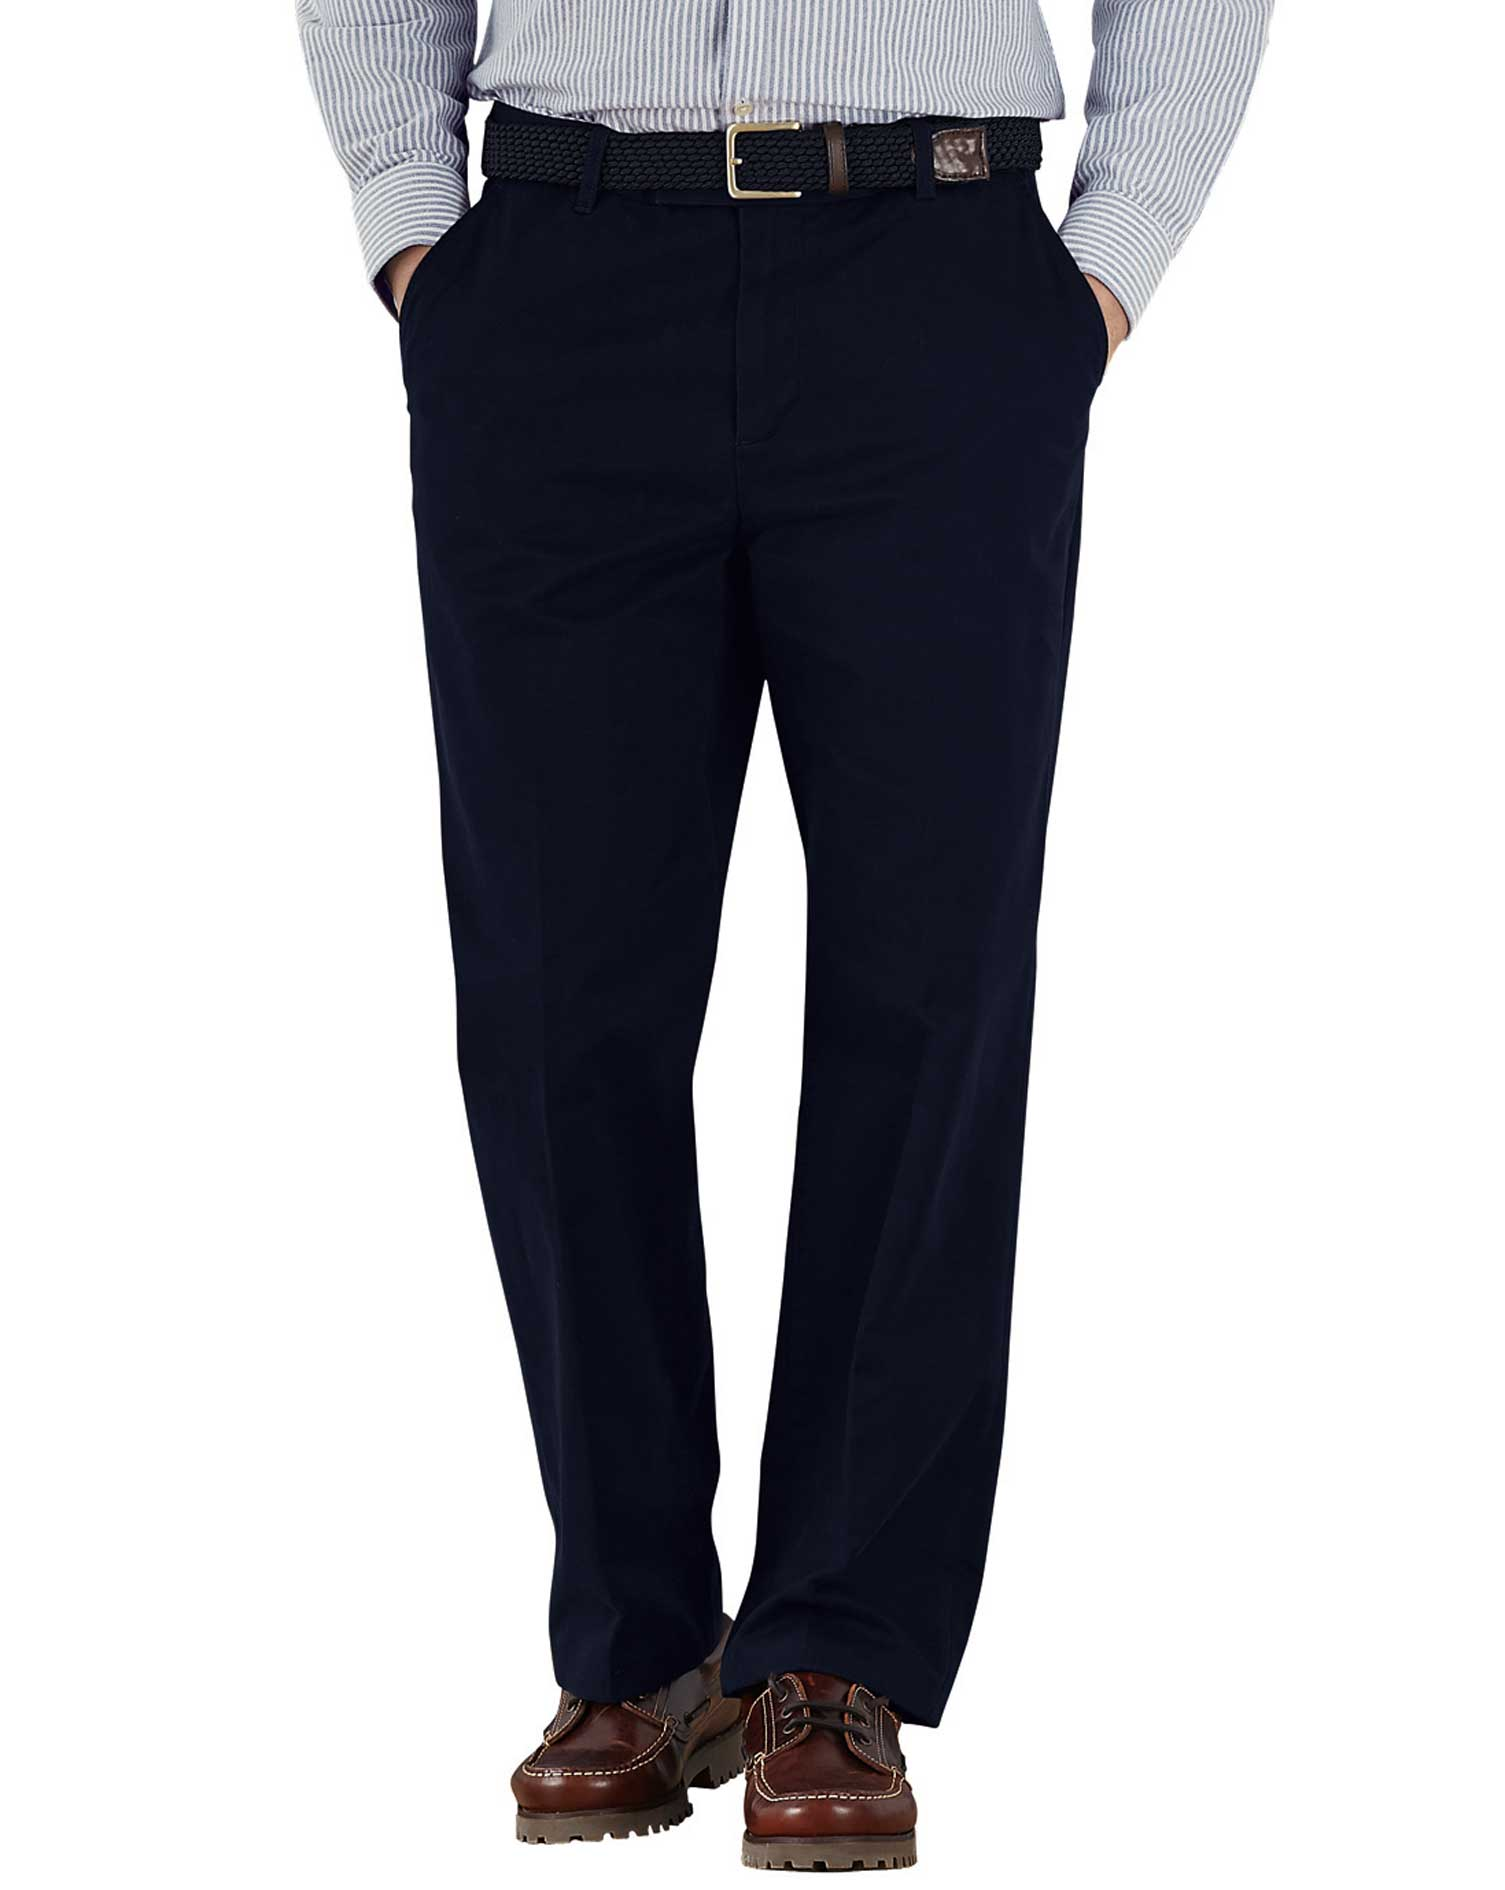 Navy Classic Fit Flat Front Weekend Cotton Chino Trousers Size W32 L29 by Charles Tyrwhitt